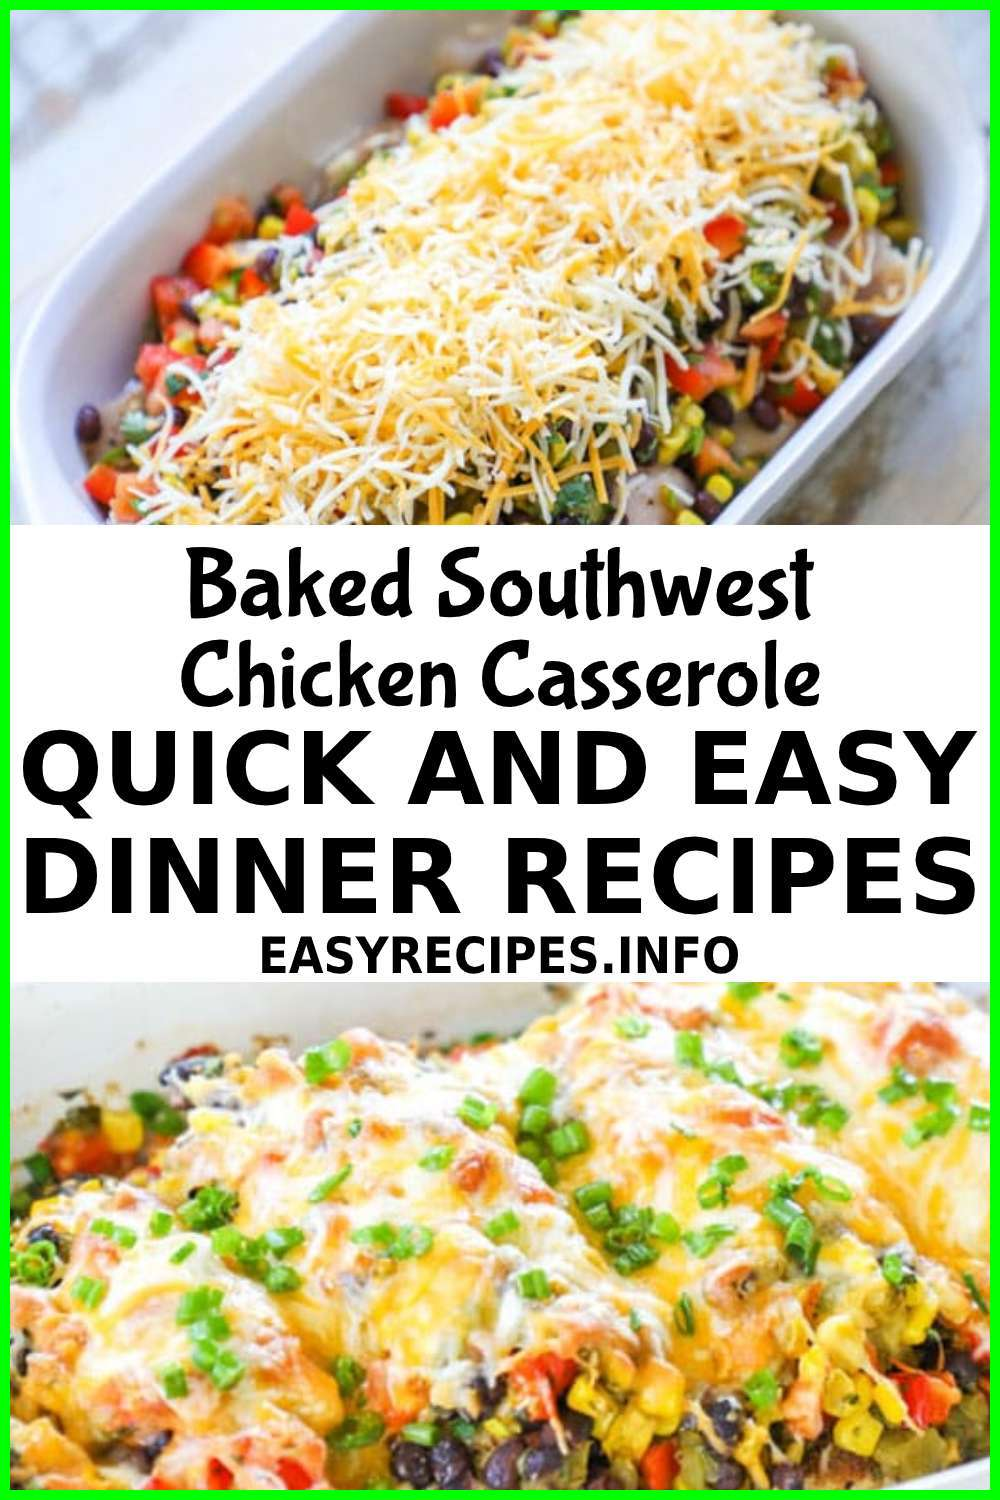 quick an easy dinner recipes, quick and easy dinner recipes, quick and easy dinner recipes chicken, quick and easy dinner recipes with chicken, quick and easy dinner recipes healthy, quick easy dinner recipes healthy, quick and easy dinner recipes for family, quick and easy dinner recipes for two, quick and easy dinner recipes healthy, quick and easy dinner recipes with ground beef, quick and easy dinner recipes for family busy mom, quick and easy dinner recipes chicken, quick and easy dinner recipes for family cheap, quick and easy dinner recipes for family healthy, quick and easy dinner recipes for family simple, quick and easy dinner recipes busy mom, quick and easy dinner recipes for two simple, quick and easy dinner recipes for two healthy, quick and easy dinner recipes vegetarian, quick and easy dinner recipes for two cheap, quick and easy dinner recipes healthy one pot meals, quick and easy dinner recipes healthy low carb, quick and easy dinner recipes for kids, quick and easy dinner recipes for family busy mom weekly menu, quick and easy dinner recipes for family chicken, quick and easy dinner recipes videos, quick and easy dinner recipes for one, quick and easy dinner recipes for two chicken, quick and easy dinner recipes healthy families, quick and easy dinner recipes for family 3 ingredients, quick and easy dinner recipes for family cheap simple, quick and easy dinner recipes for family beef, quick and easy dinner recipes for two beef, quick and easy dinner recipes with ground beef main dishes, quick and easy dinner recipes with ground beef casseroles, quick and easy dinner recipes for two simple weeknight meals, quick and easy dinner recipes for family busy mom simple, quick and easy dinner recipes healthy vegetarian, quick and easy dinner recipes pasta, quick and easy dinner recipes crockpot, quick and easy dinner recipes cheap, quick and easy dinner recipes for family busy mom kids